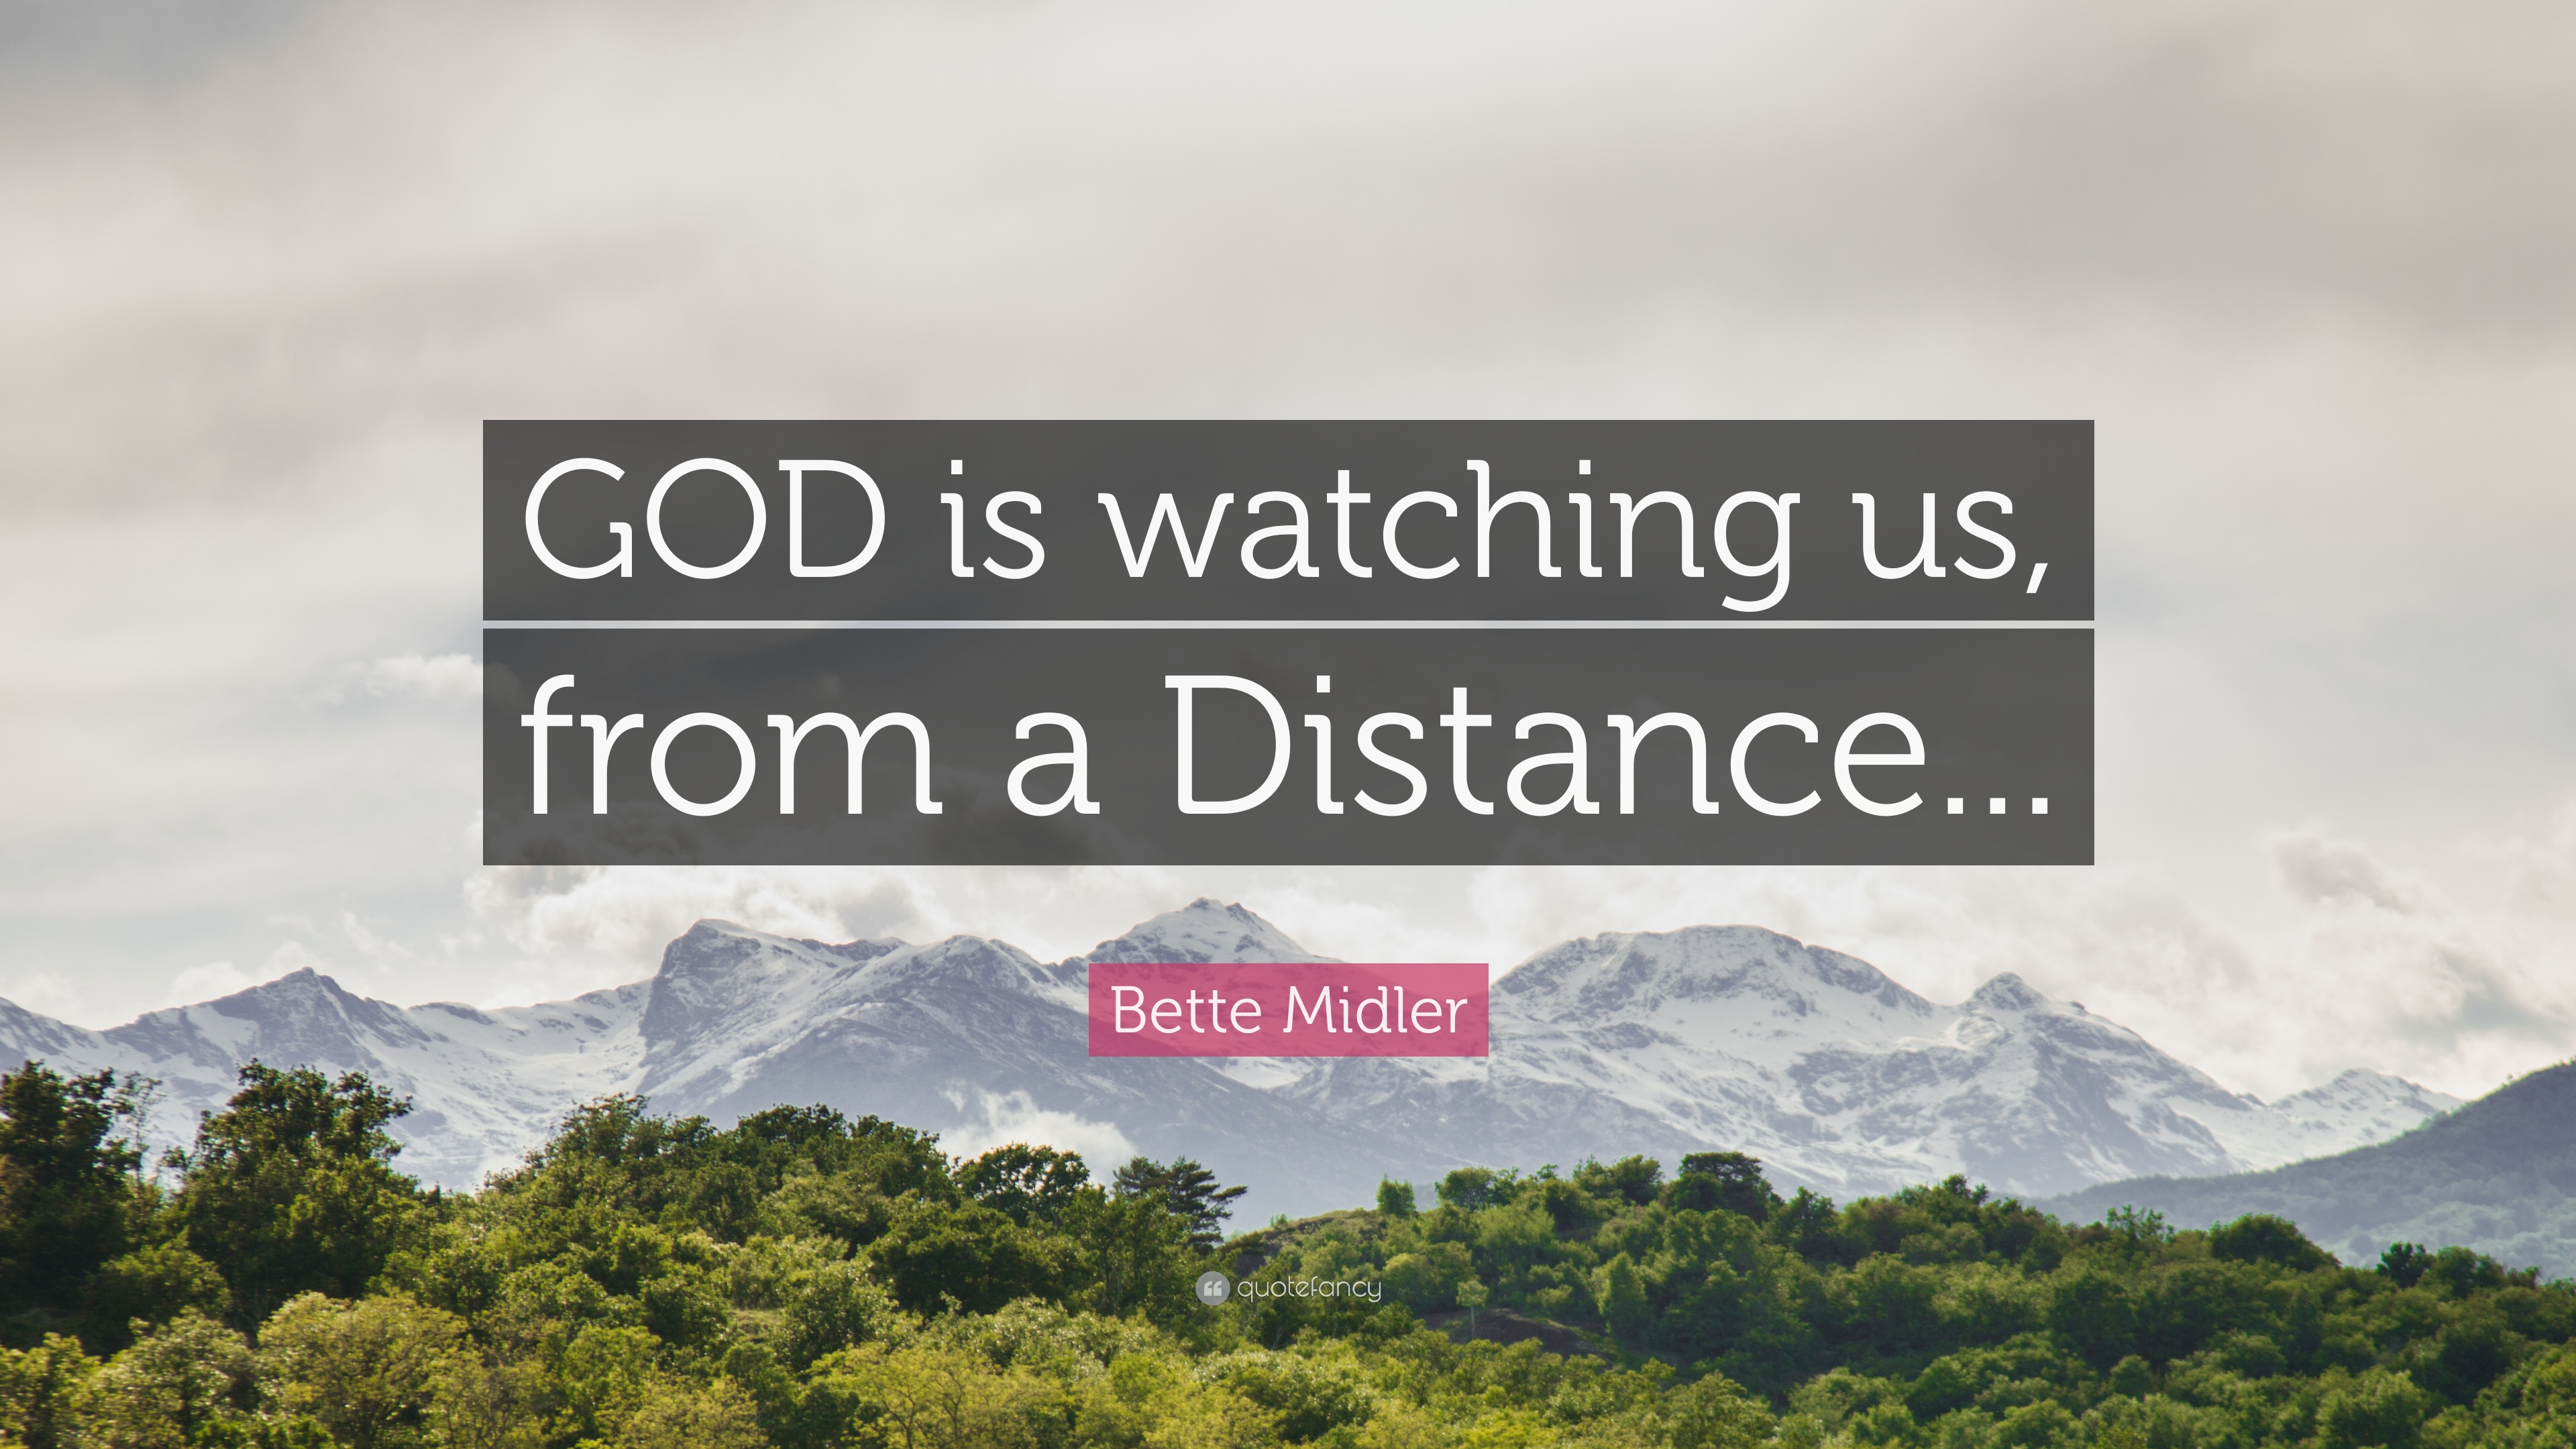 """bette midler quote """"god is watching us from a distance """""""